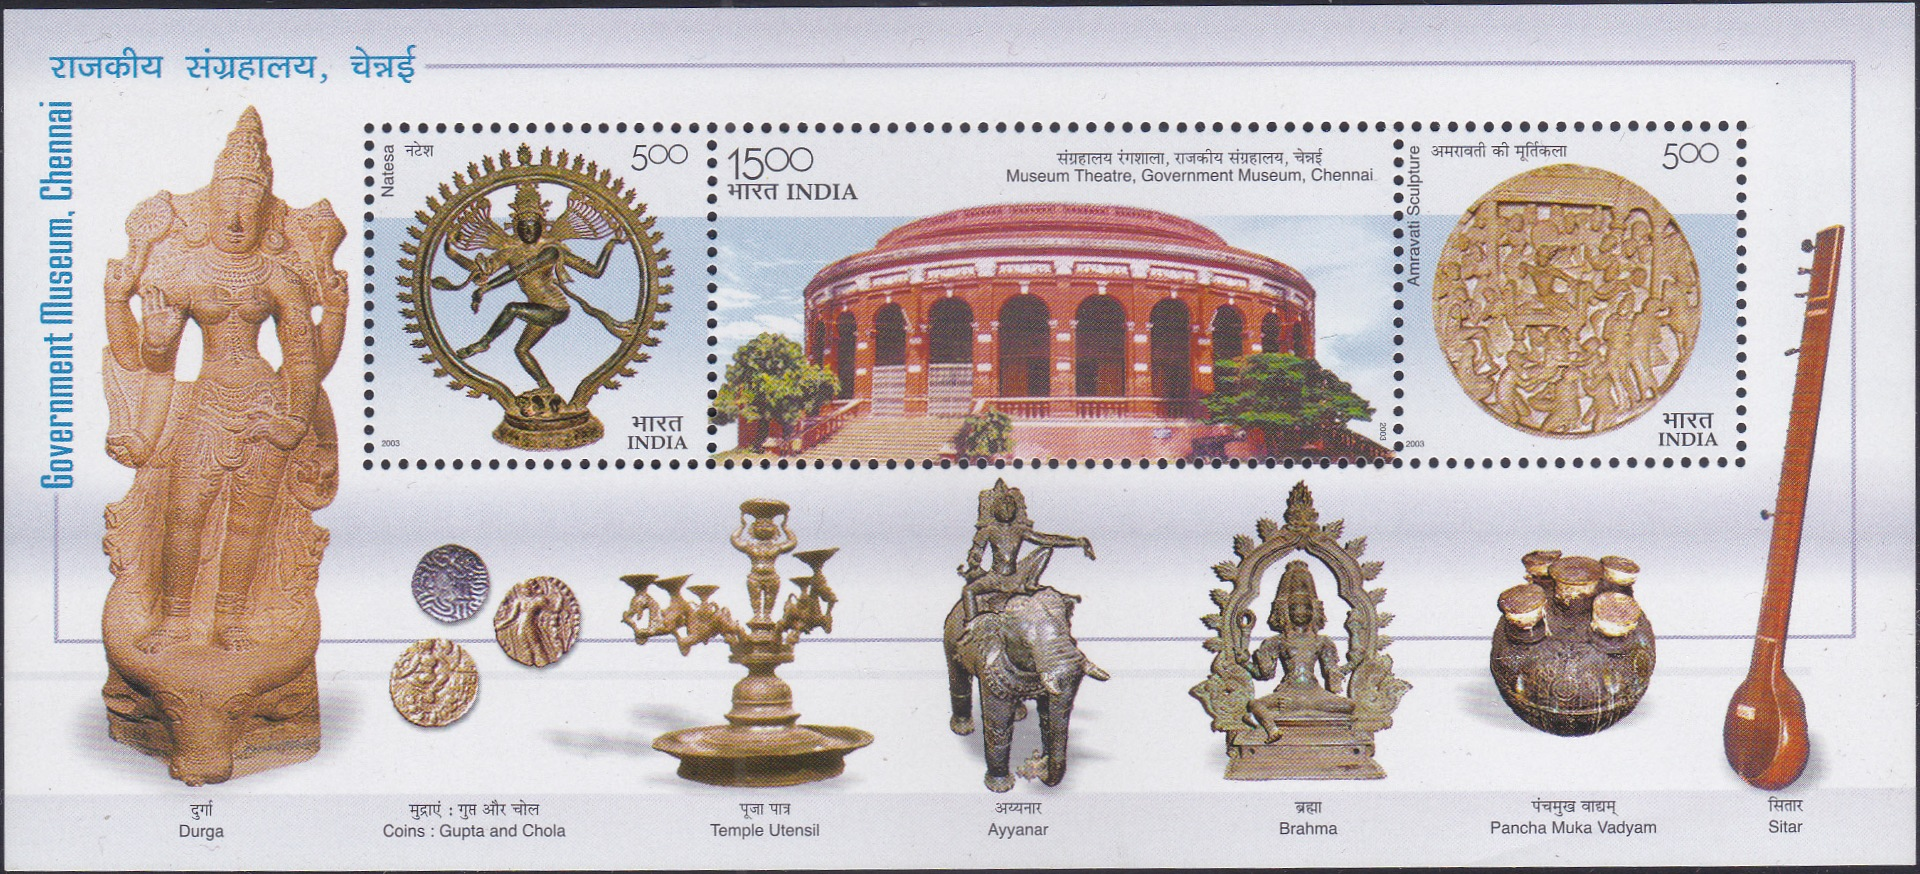 1979 Government Museum, Chennai [India Souvenior Sheet of 3 stamps 2003]